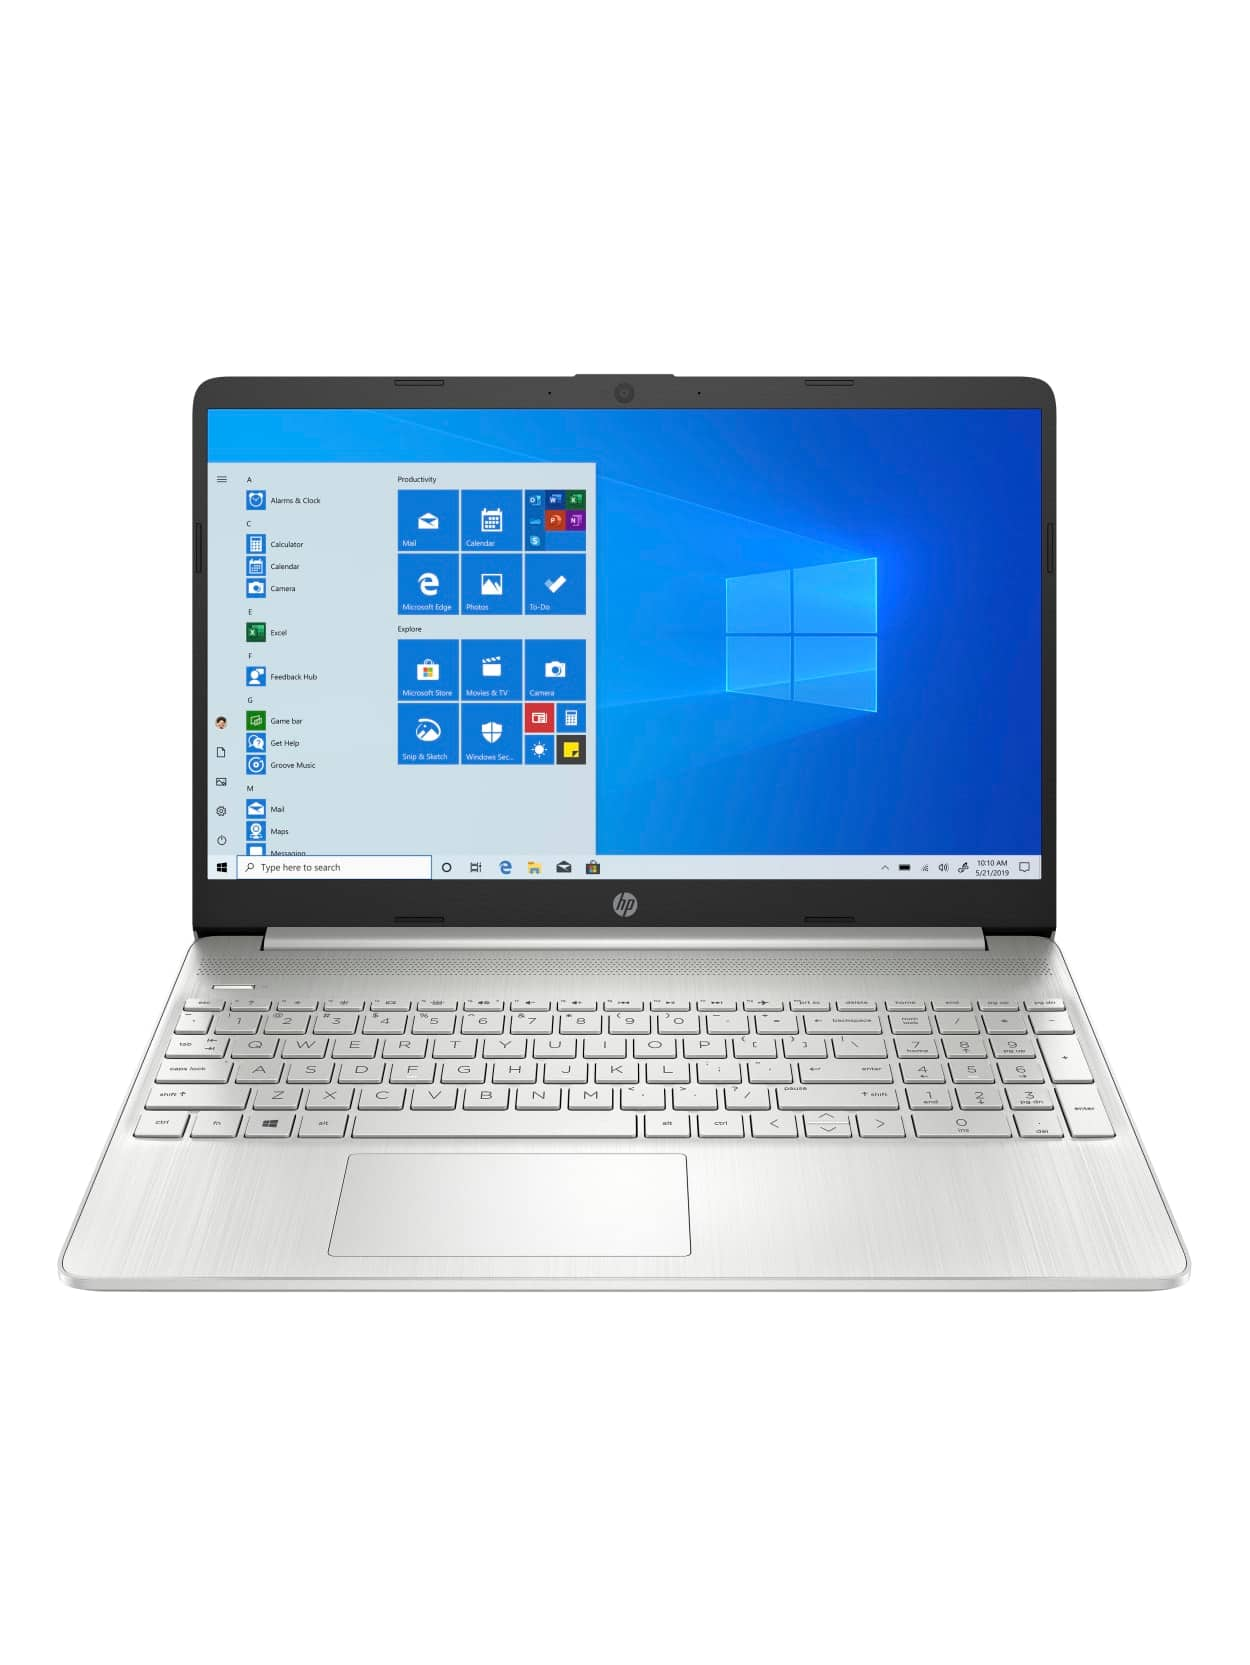 """$559.99 HP 15.6"""" Laptop With AMD Ryzen 7 Processor, 16GB Memory, Wifi 6, 256GB NVMe™ SSD Deal Of The Day Office Depot. Free Ship."""